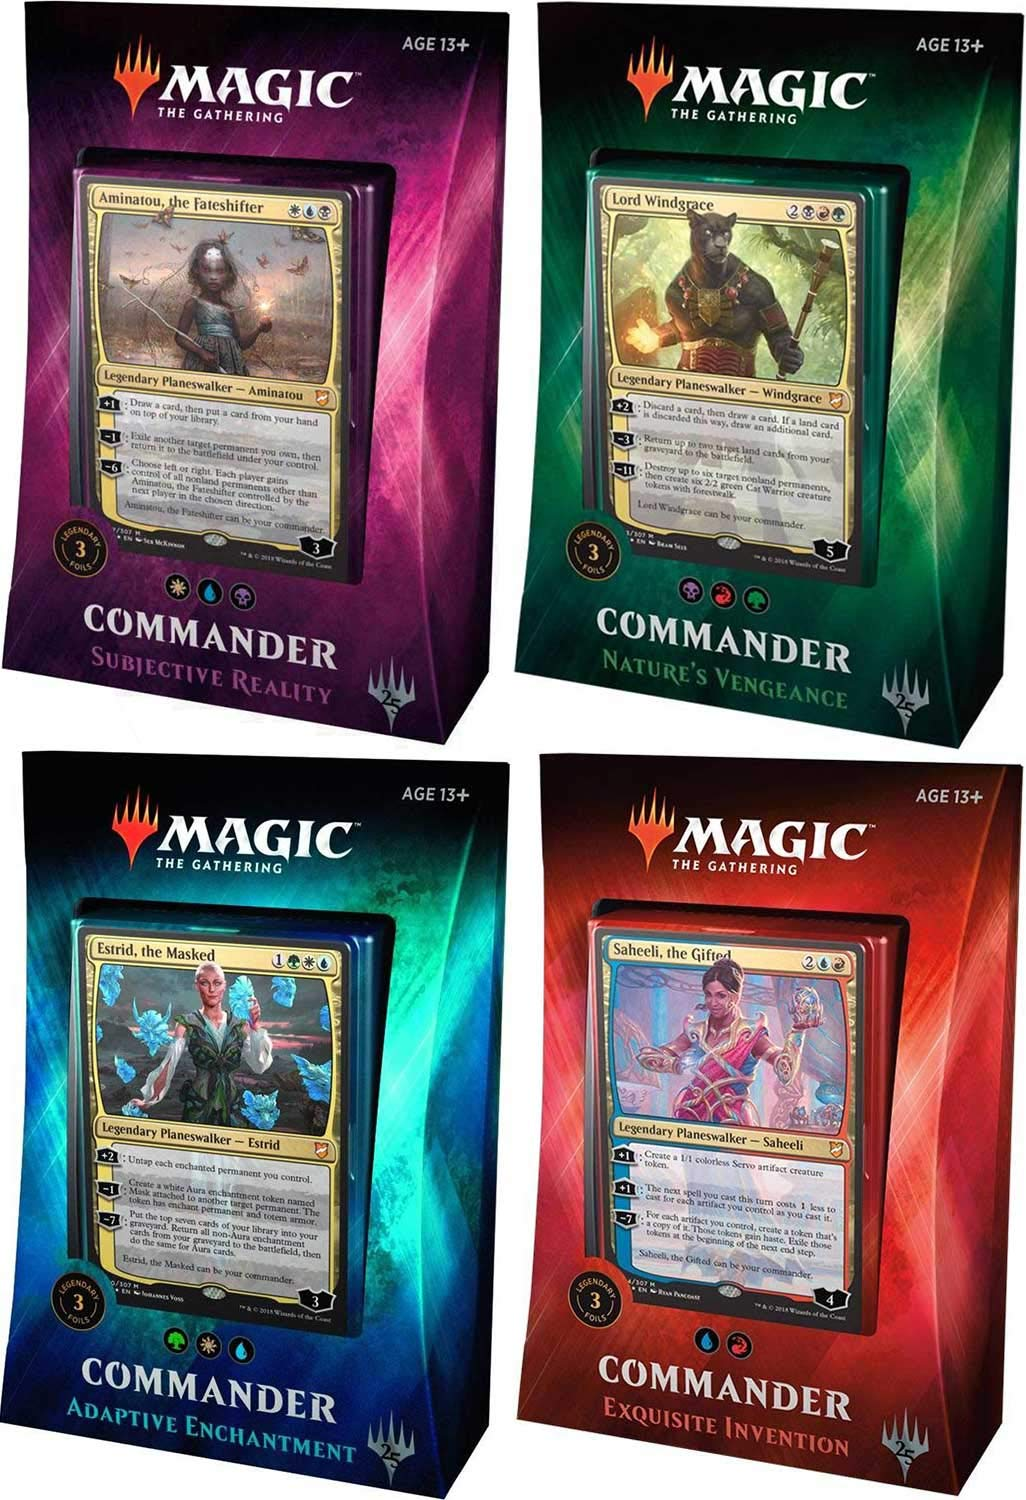 MTG Magic The Gathering 2018 Commander Set - All 4 Decks by Wizards of the Coast (Image #1)